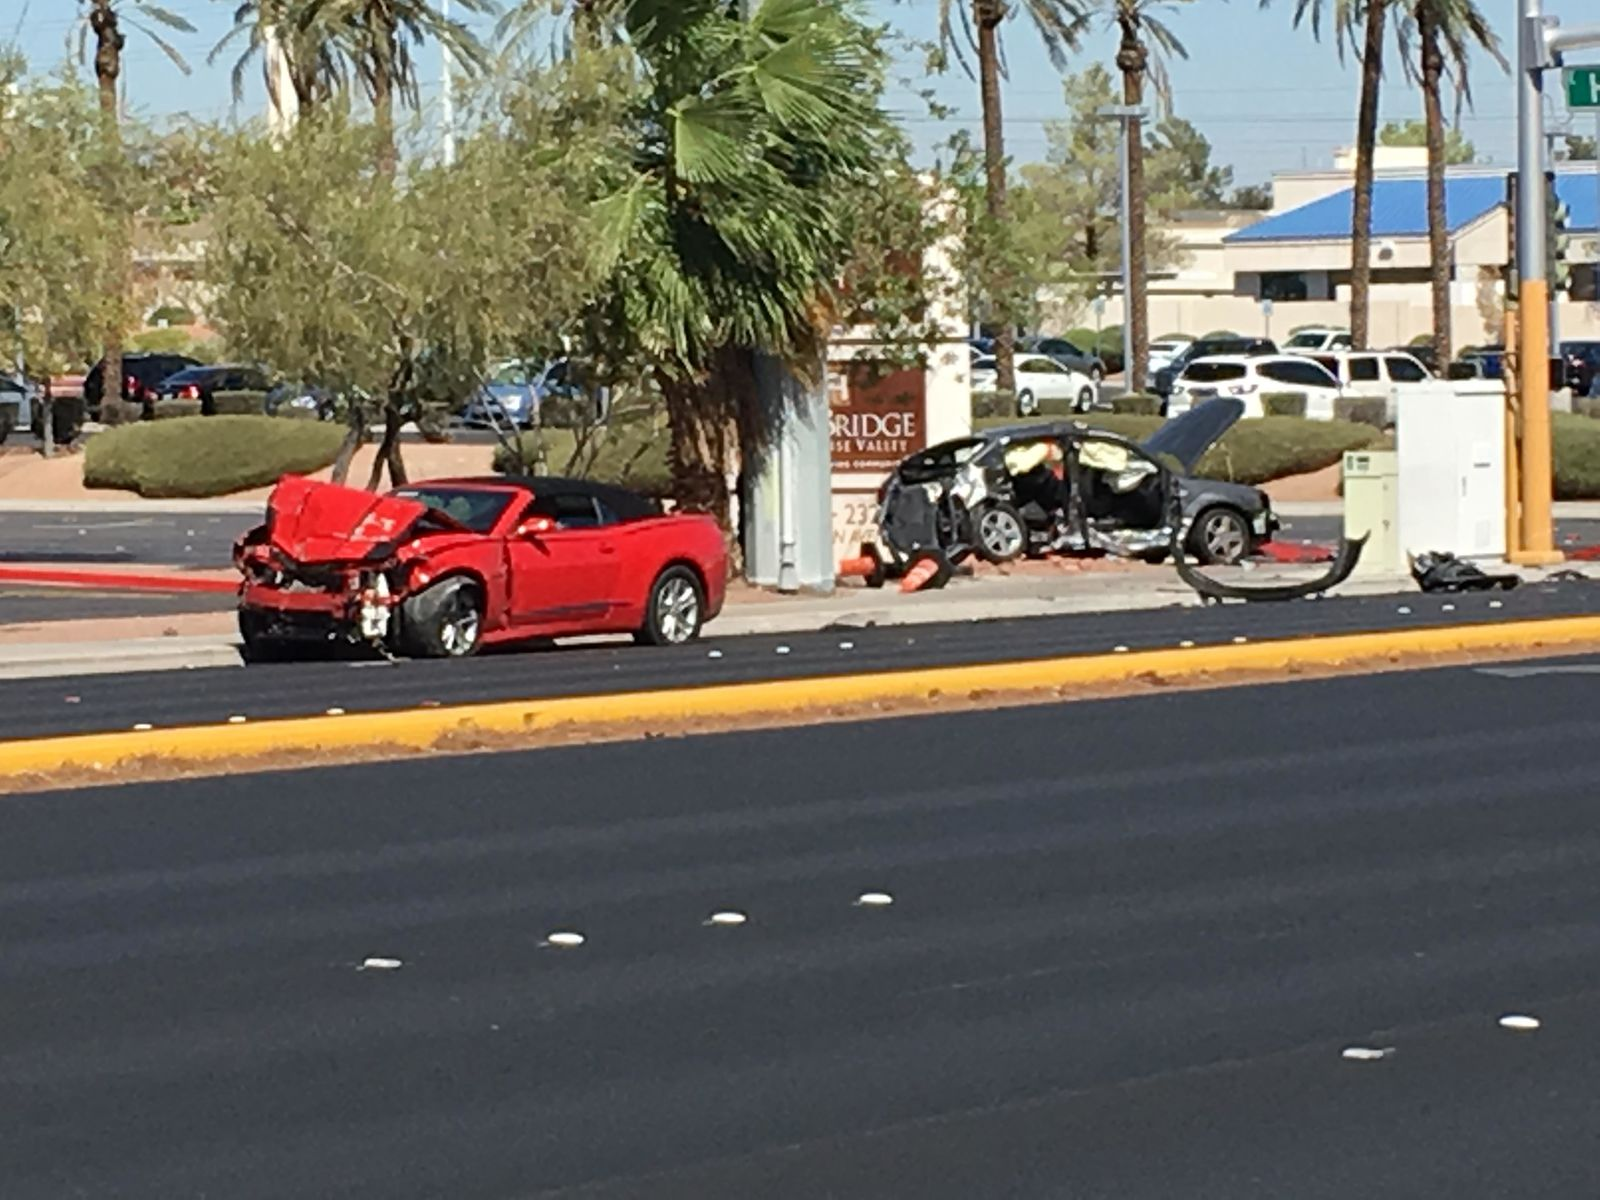 Two vehicles are damaged after a crash at Eastern Avenue and Harmon Road in Las Vegas on Friday, Aug. 31, 2018. (KSNV)